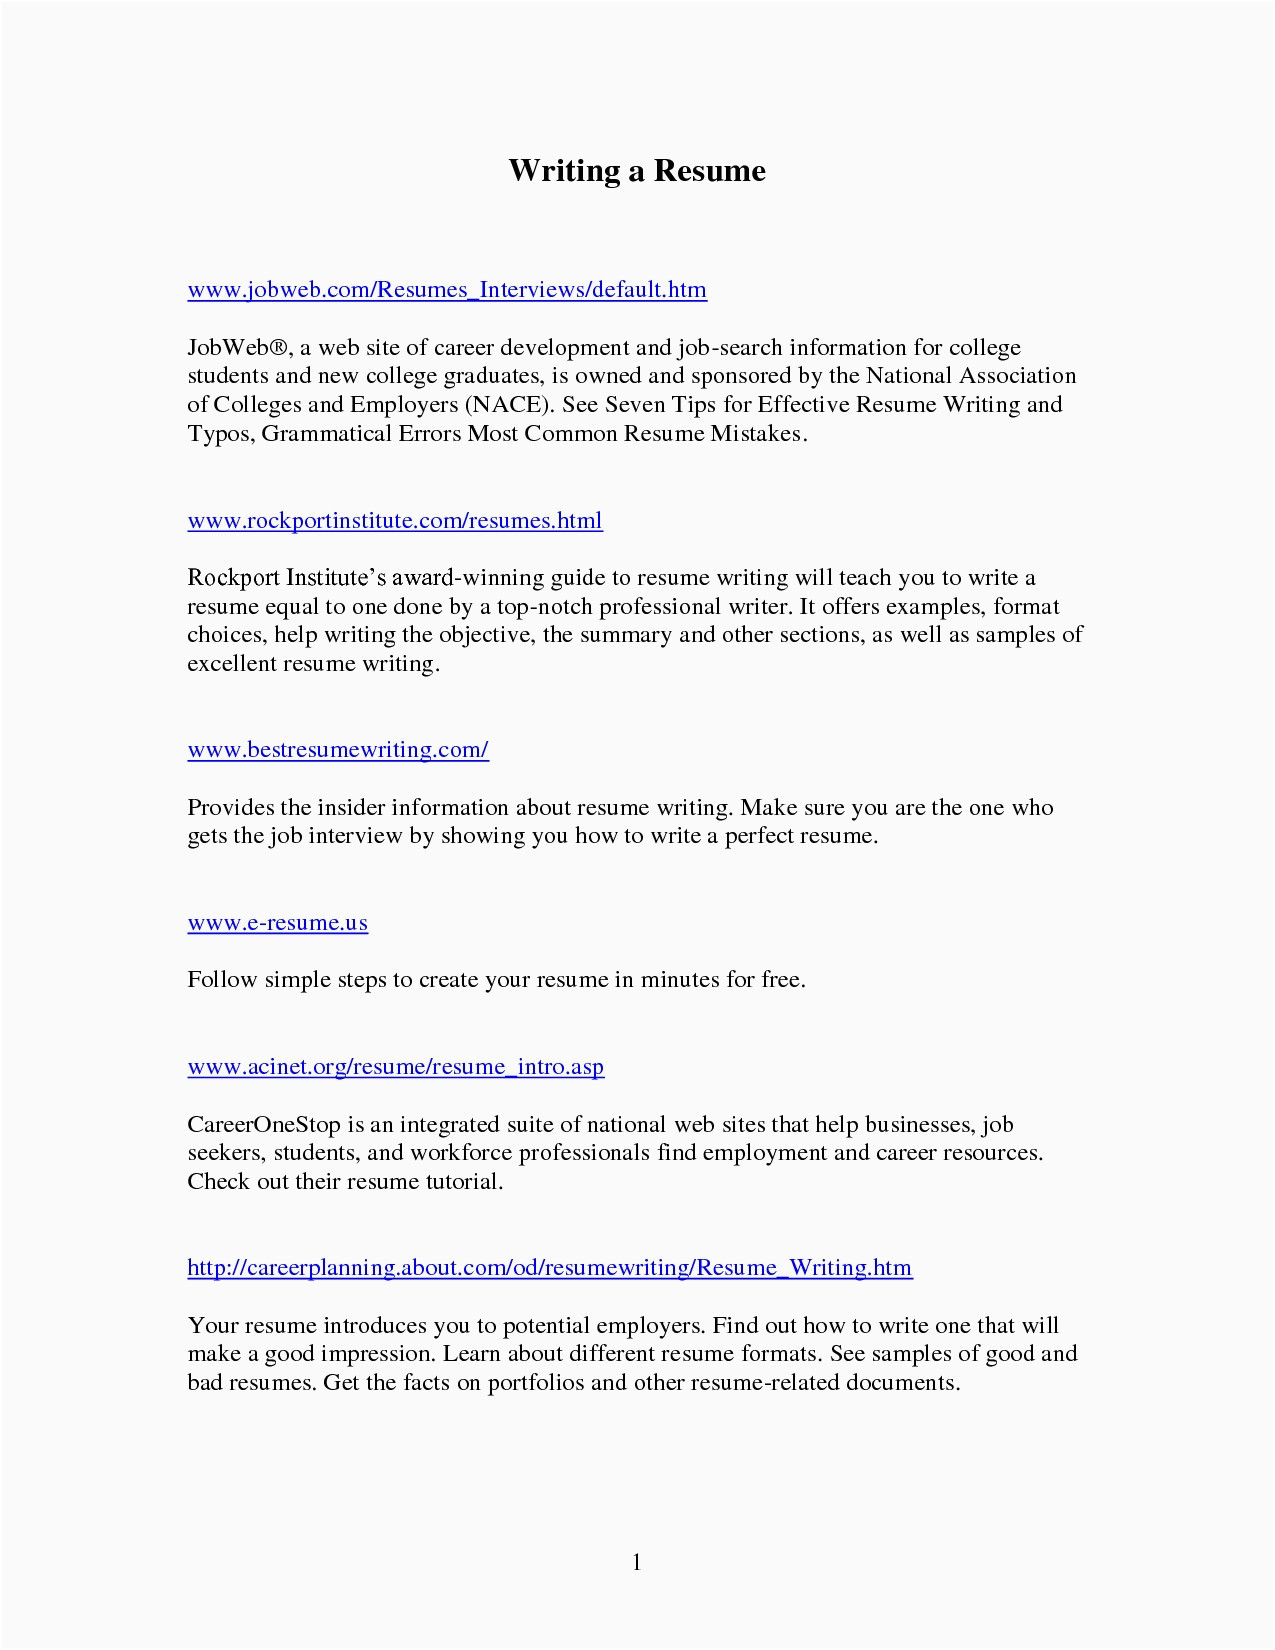 Professional association Of Resume Writers - Professional association Resume Writers Example Resume Writers